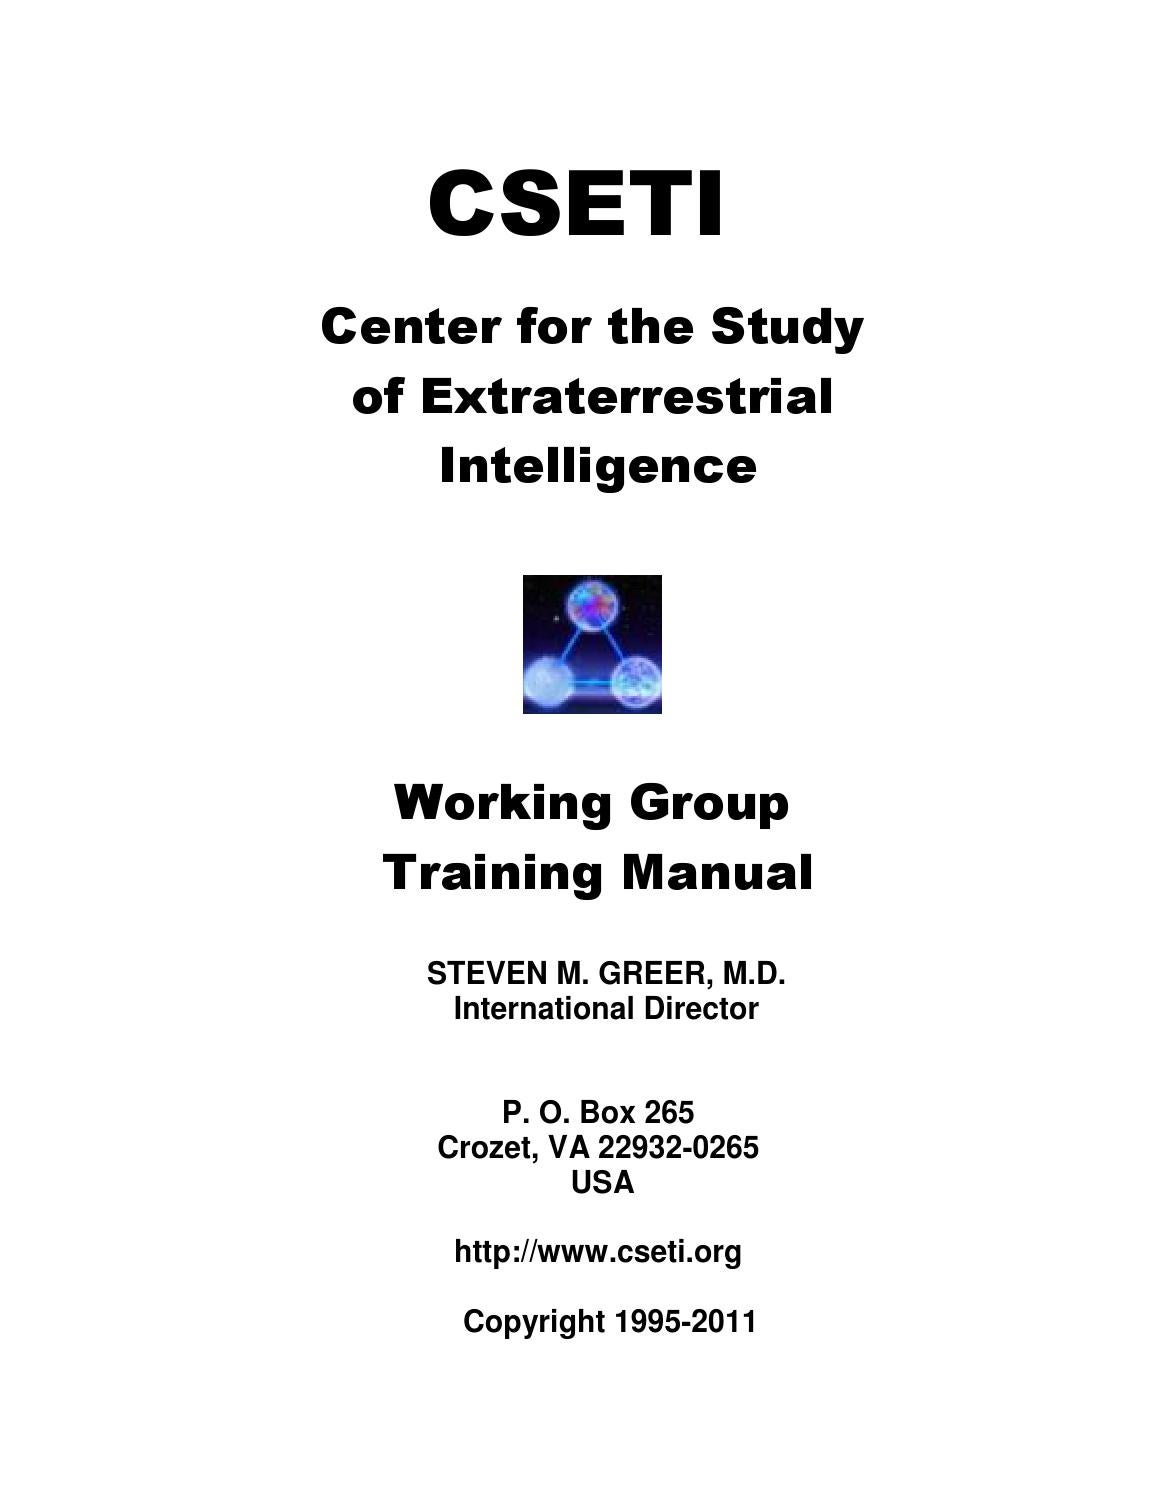 Steven greer ce5 cseti 02 working group manual how to form